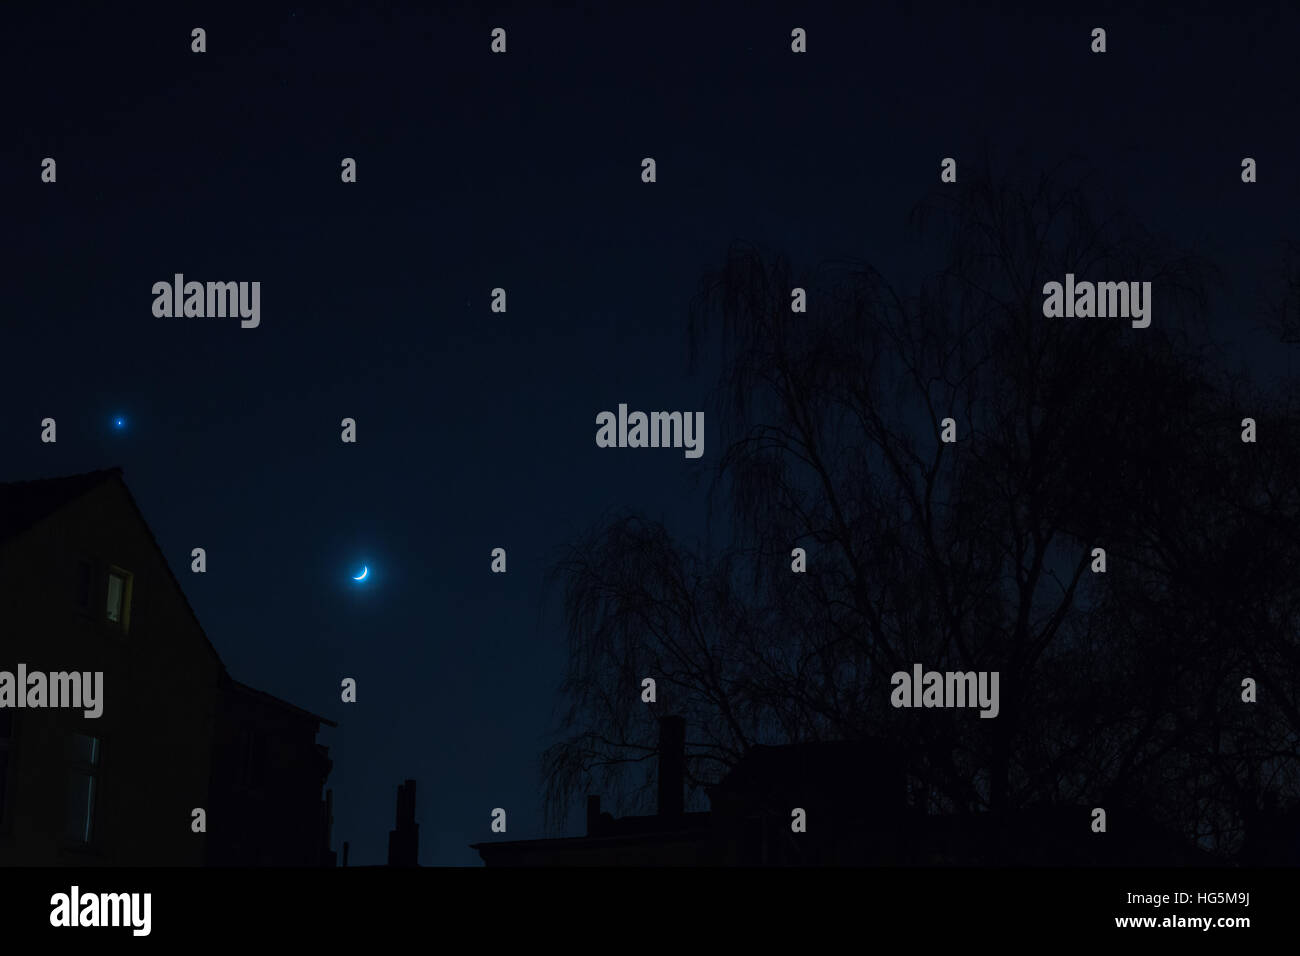 Suburban backstreet nightshot with new moon and planet venus star over building's roof and tree shadow - Stock Image